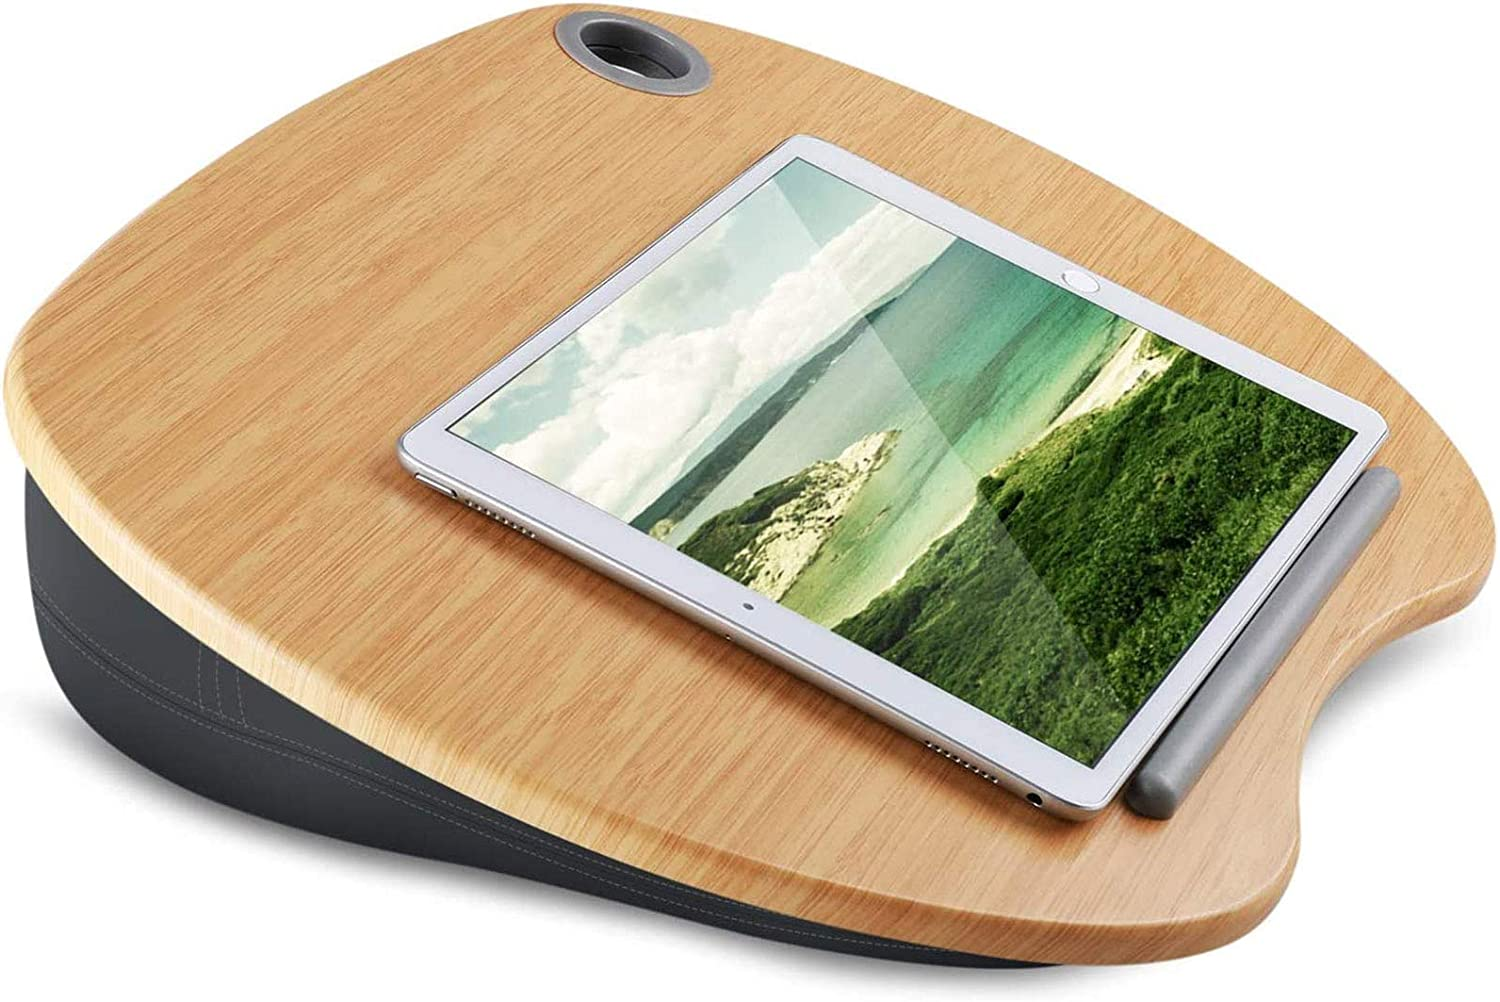 HUANUO Lap Desk - Fits up to Stand Laptop New Shipping Free inch Slim 14 w Ranking TOP16